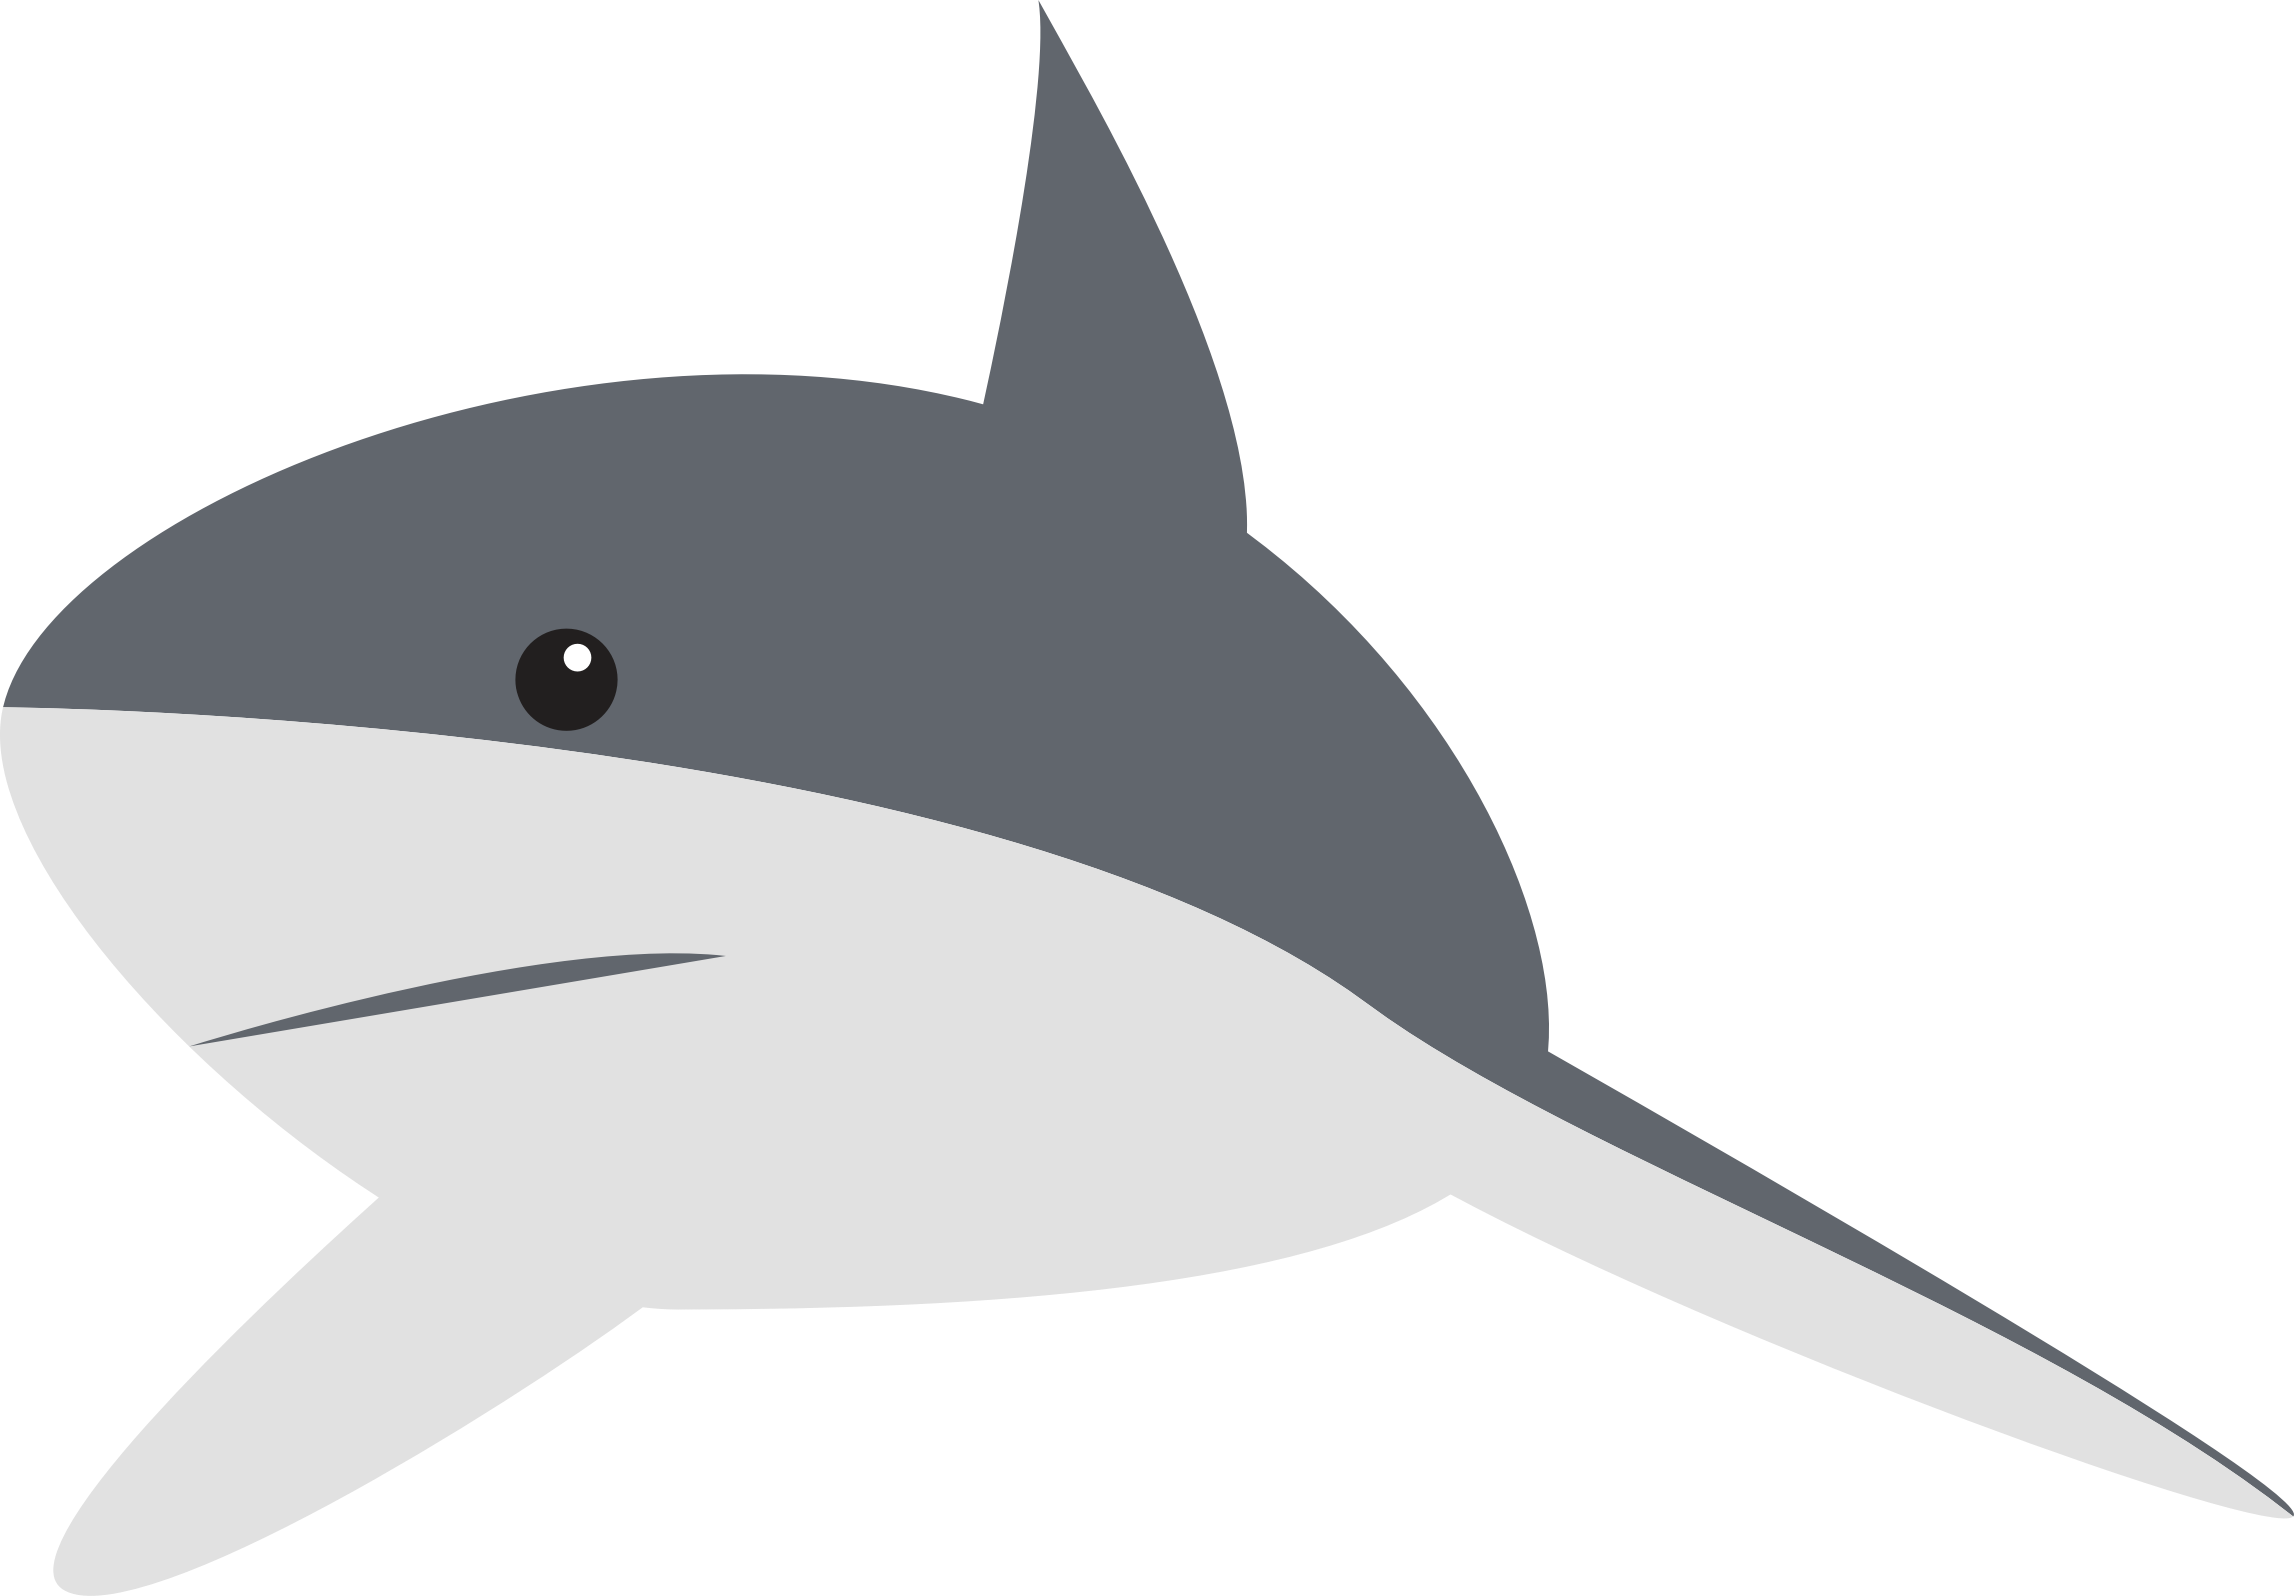 Dolphin clipart toon. Cartoon shark group with